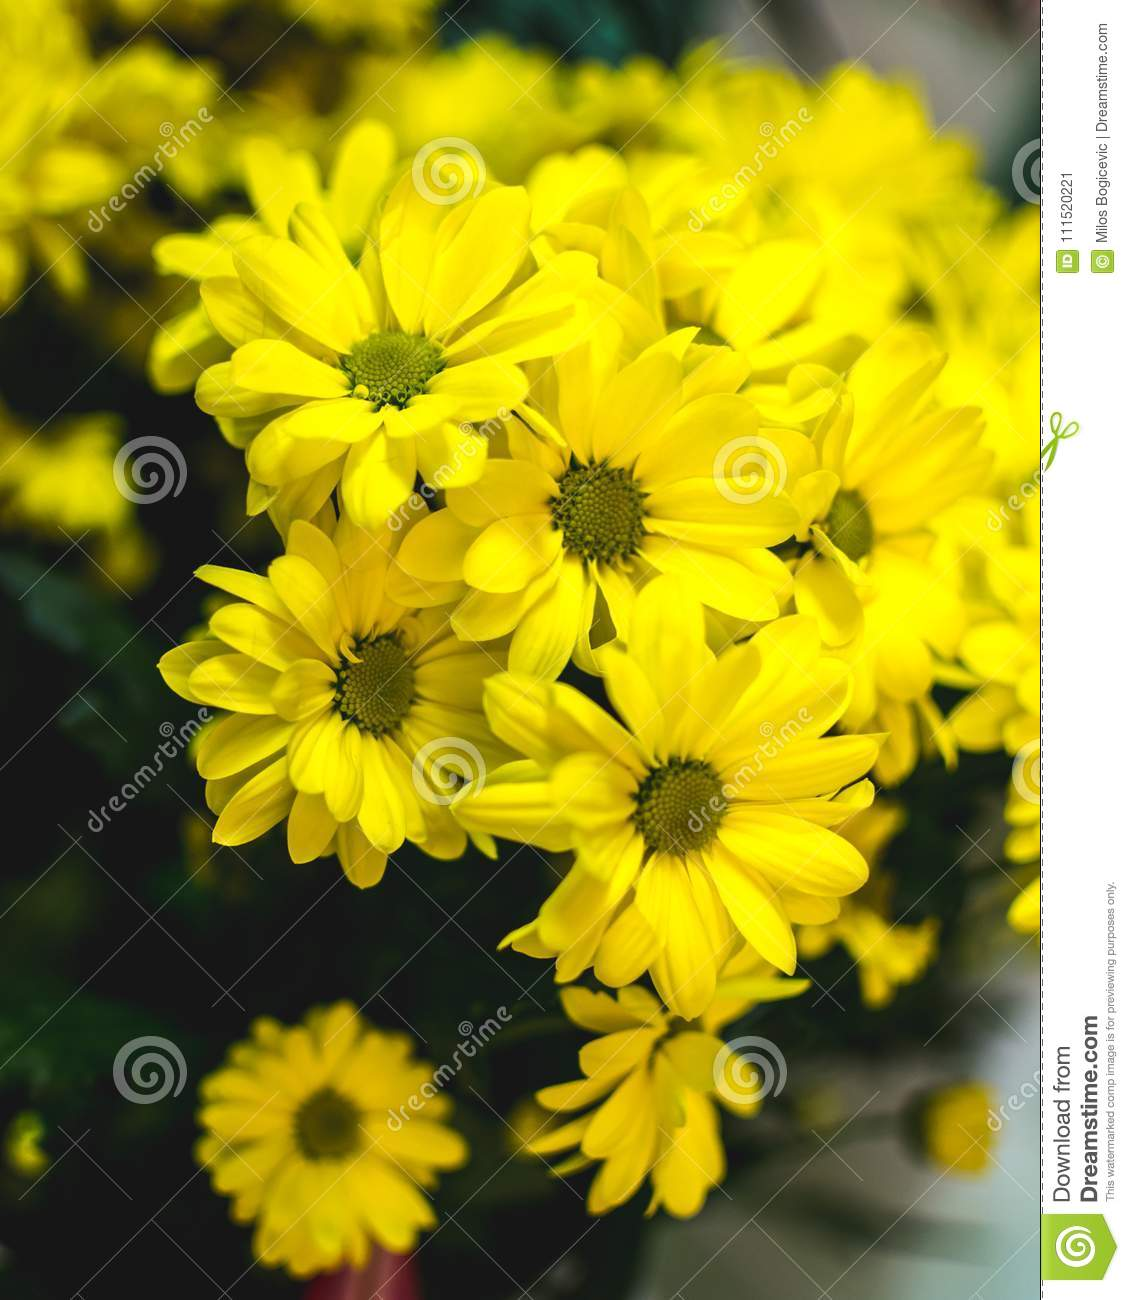 Yellow Summer Flowers Margarita Romantic Flower Stock Image Image